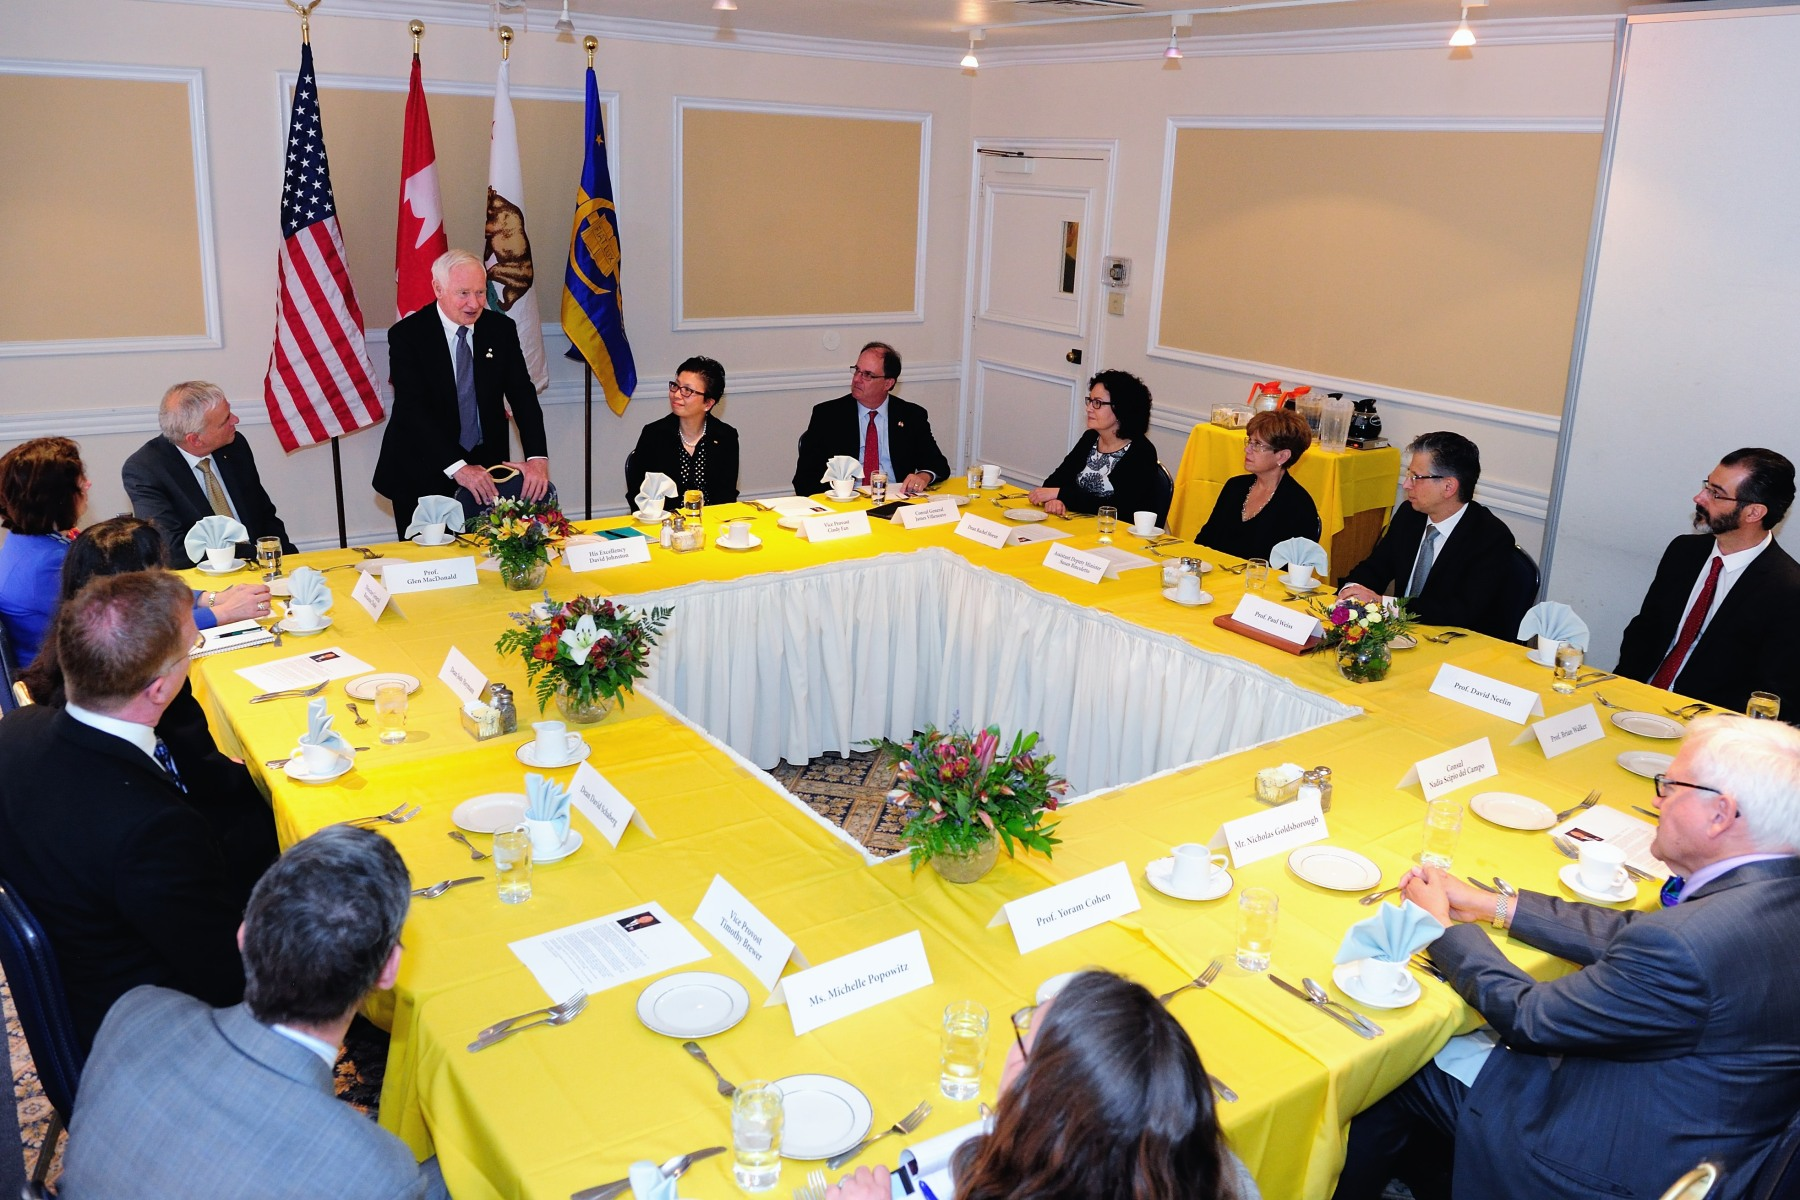 A discussion on innovation and the partnership between UCLA and Canada followed and was moderated by Mrs. Fan,Vice-Provost for International Studies. Established in 2001, the Canadian Studies Program at UCLA fosters a better understanding of Canadian society and its relationship with the United States. Through its teaching, research and public lecture series, the program facilitates awareness of issues of mutual concern to the two countries among students, faculty and the public at large.